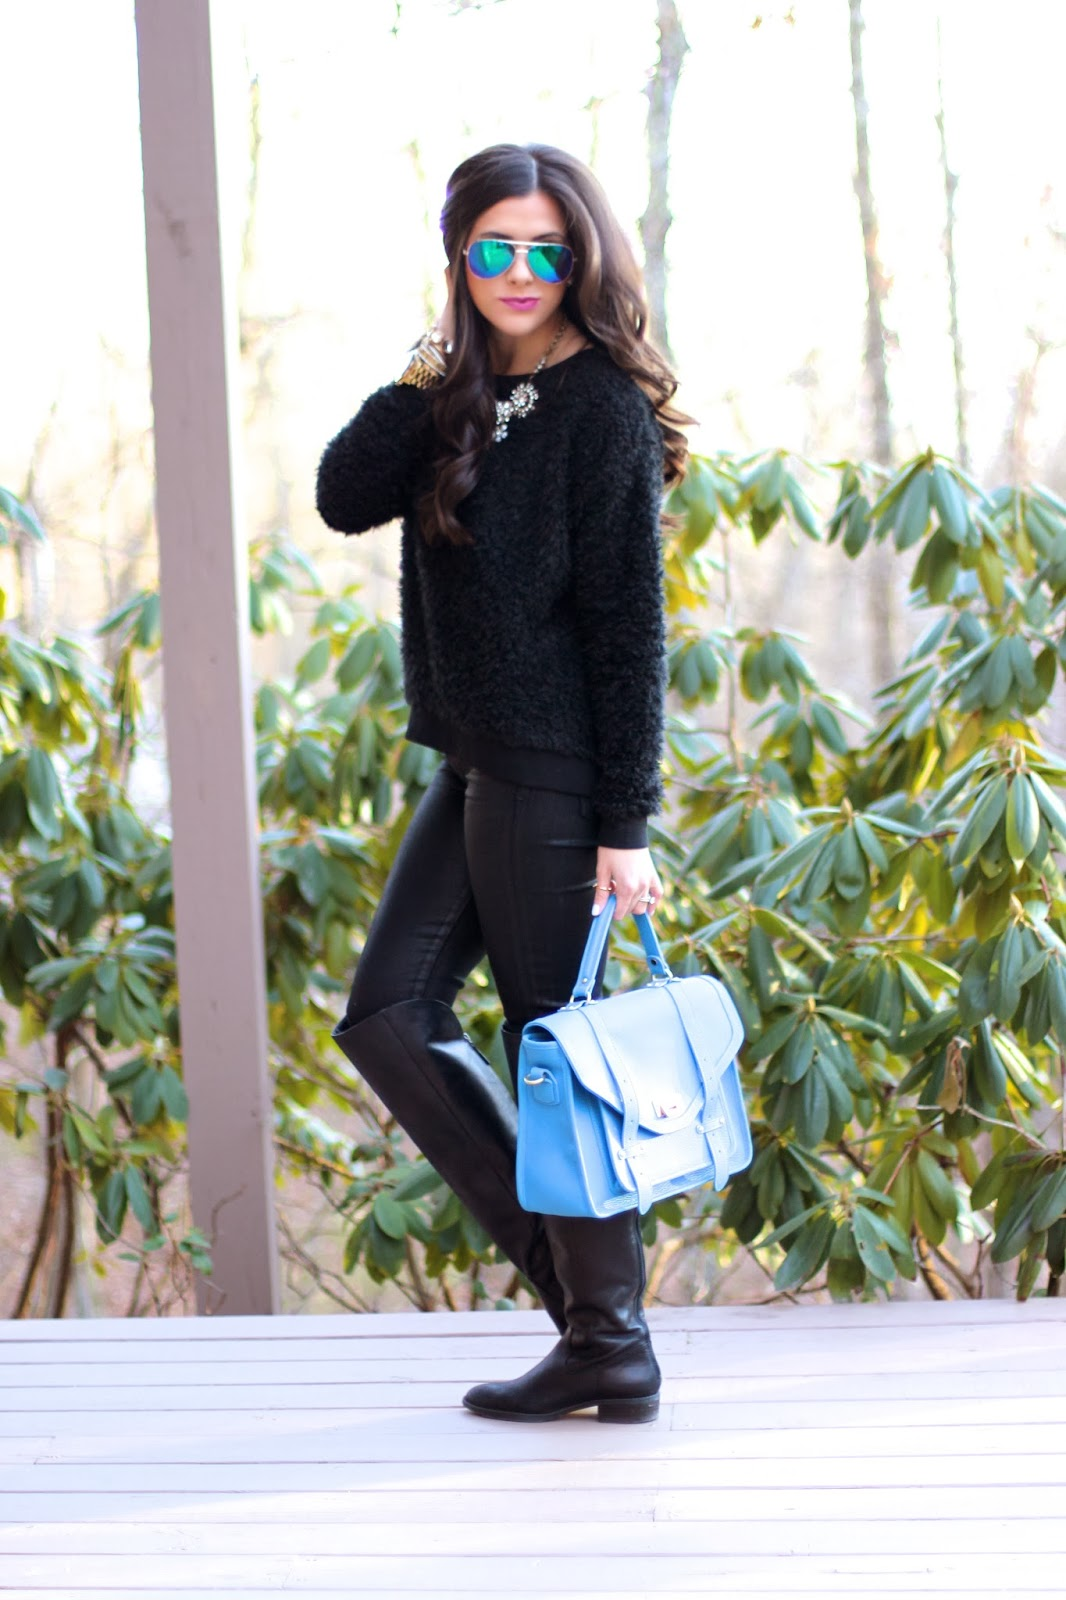 www.thesweetestthingblog.com, Emily Gemma, Faux Leather Leggings, Fuzzy Black Sweater, Mirrored Blue Aviators, Mirrored Blue RayBans, Sole Society boots, Over the knee boots, MAC up the amp, Gigi New York, Gigi New York Hayden Satchel, Spring Gigi NY Haydon Satchel, Michael Kors Runway Watch, David Yurman ring